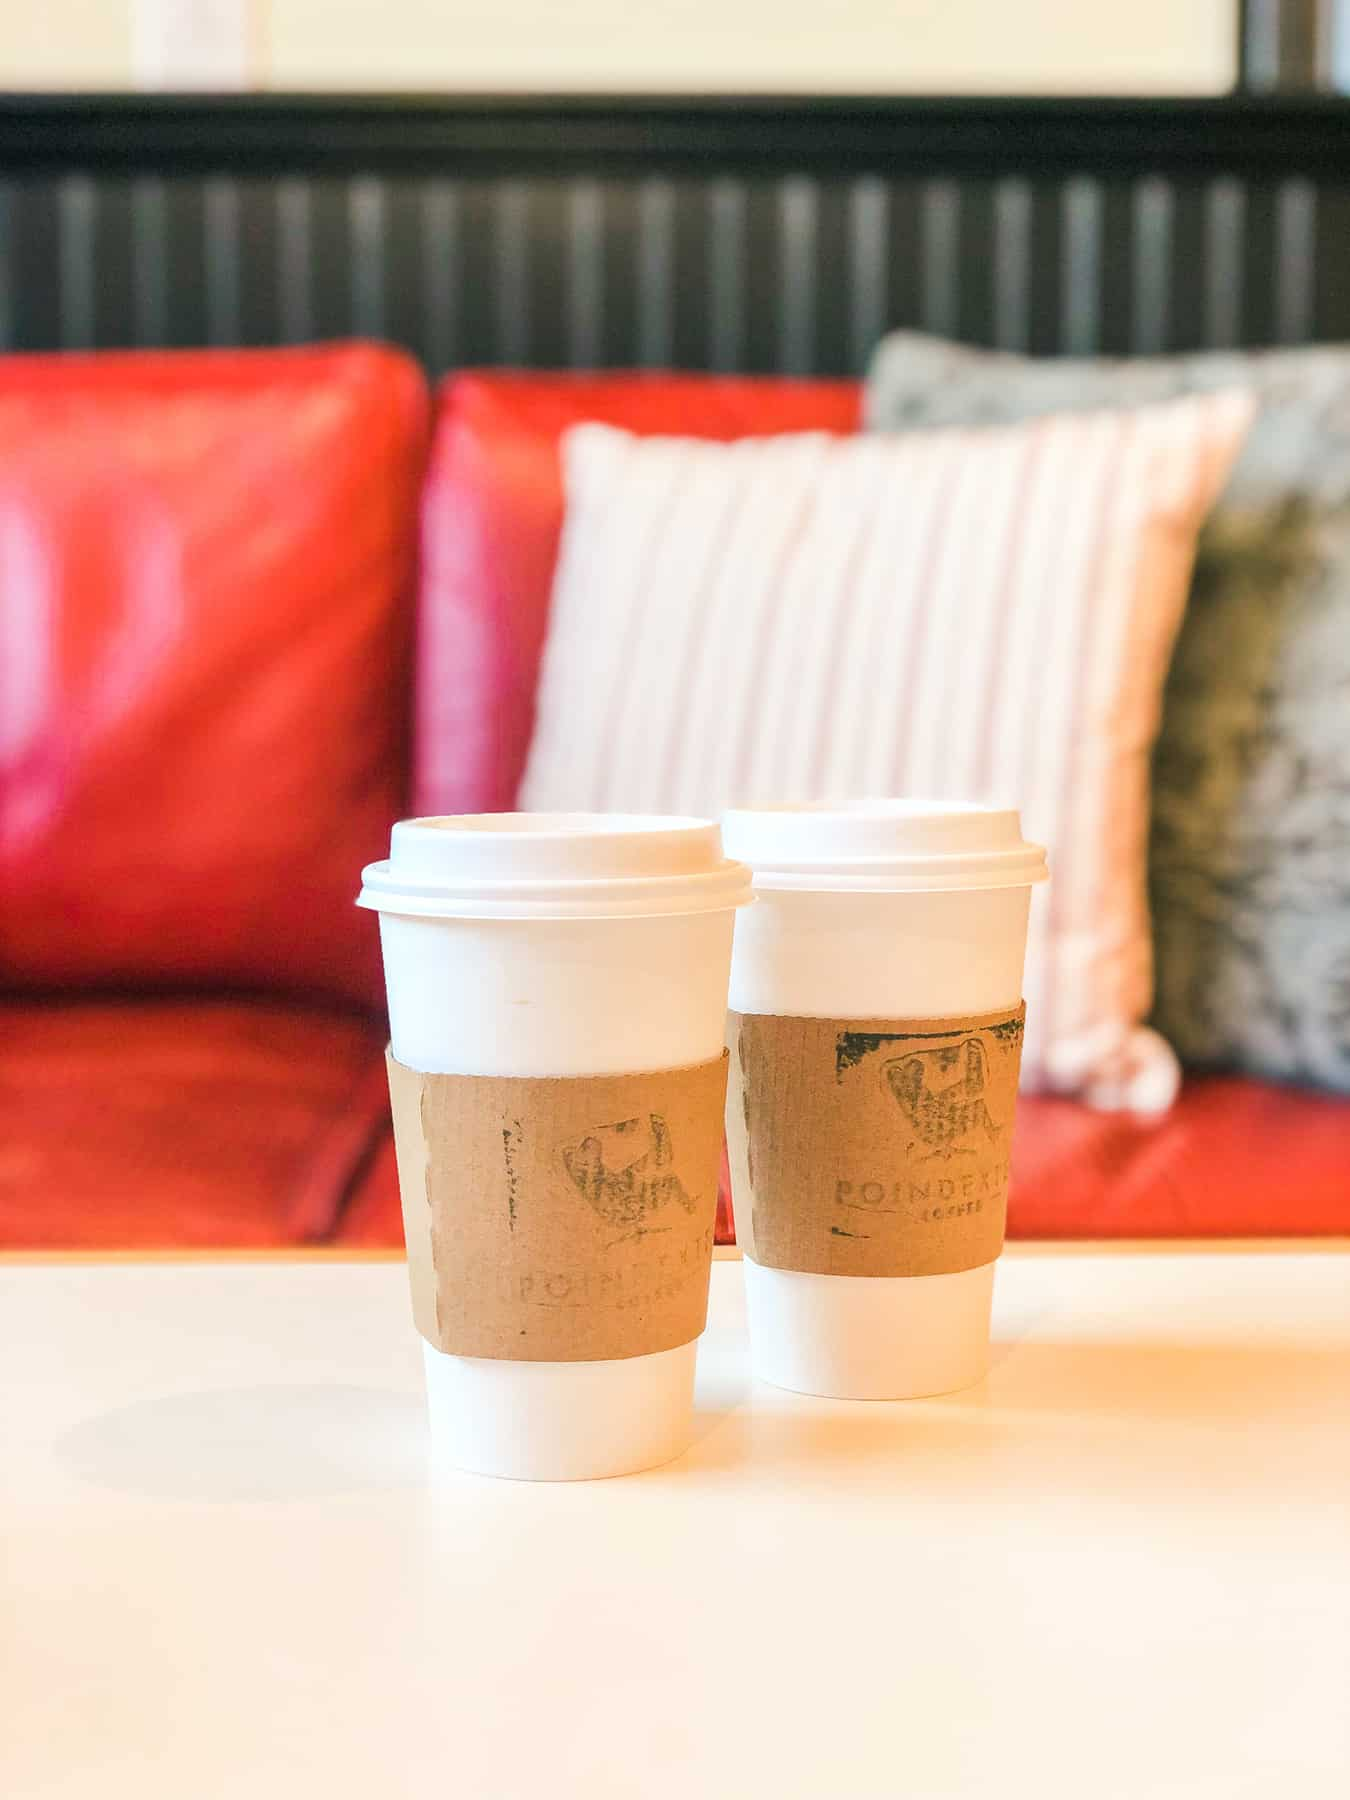 Two paper to-go coffee cups with cardboard sleeves sit on a table in front of a red couch.